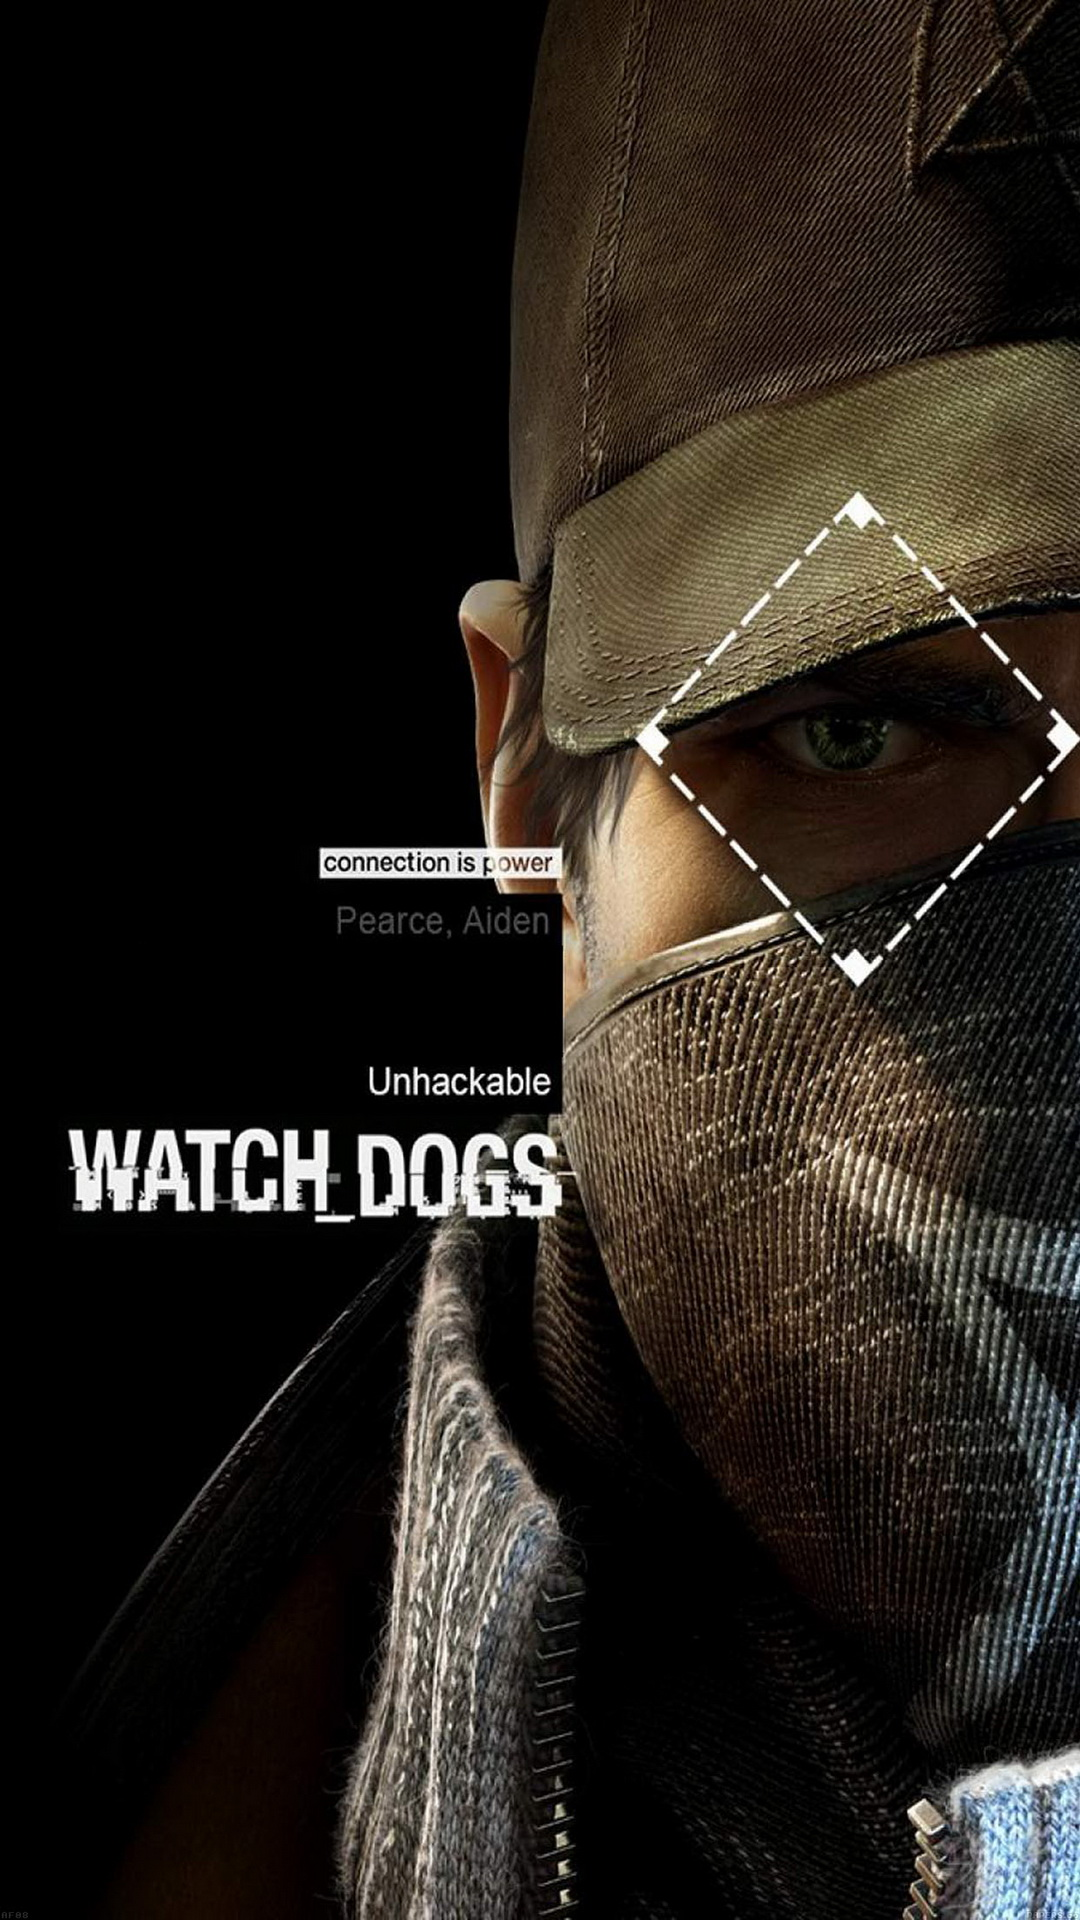 Watch dogs ipad wallpaper